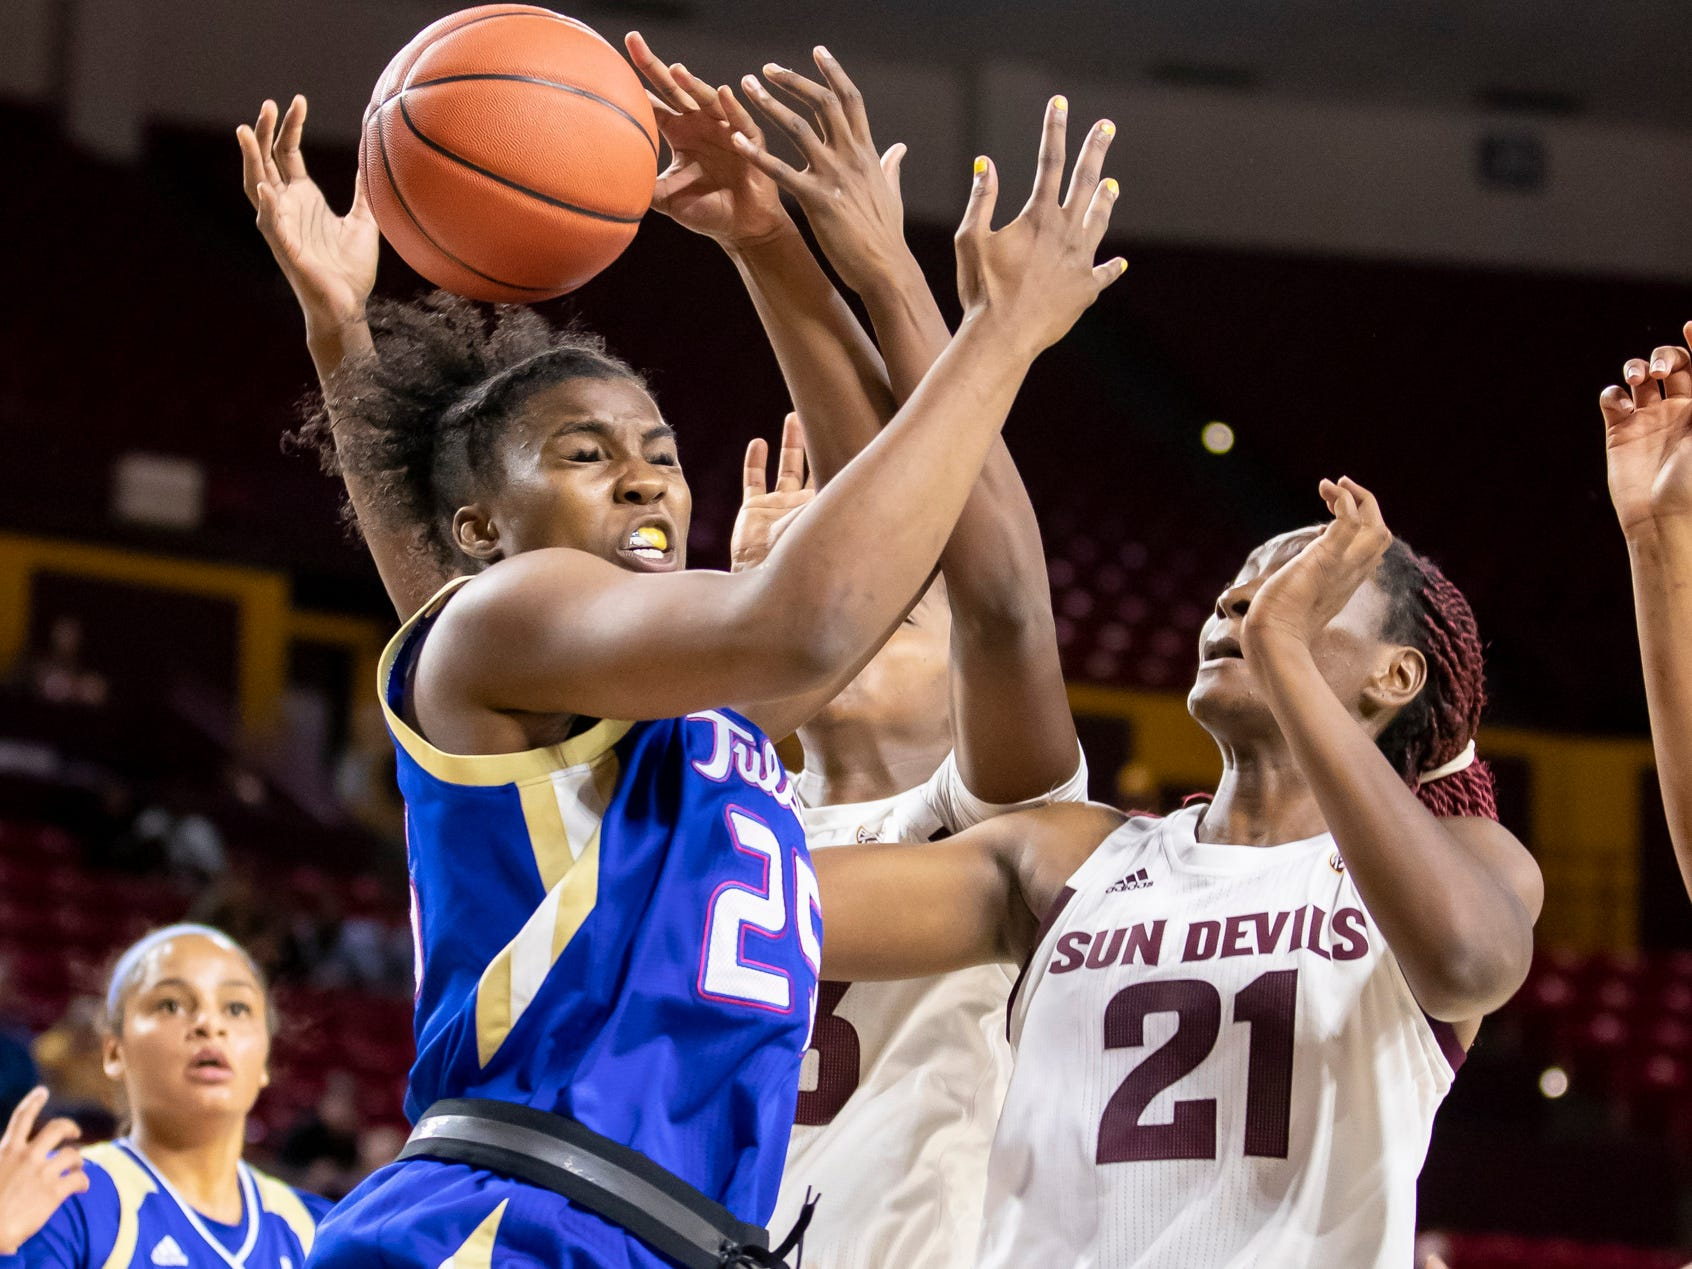 Forward Tyjae' Scales (25) of Tulsa Golden Hurricane reaches for a rebound against the Arizona State Sun Devils at Wells Fargo Arena on Sunday, December 2, 2018 in Tempe, Arizona.